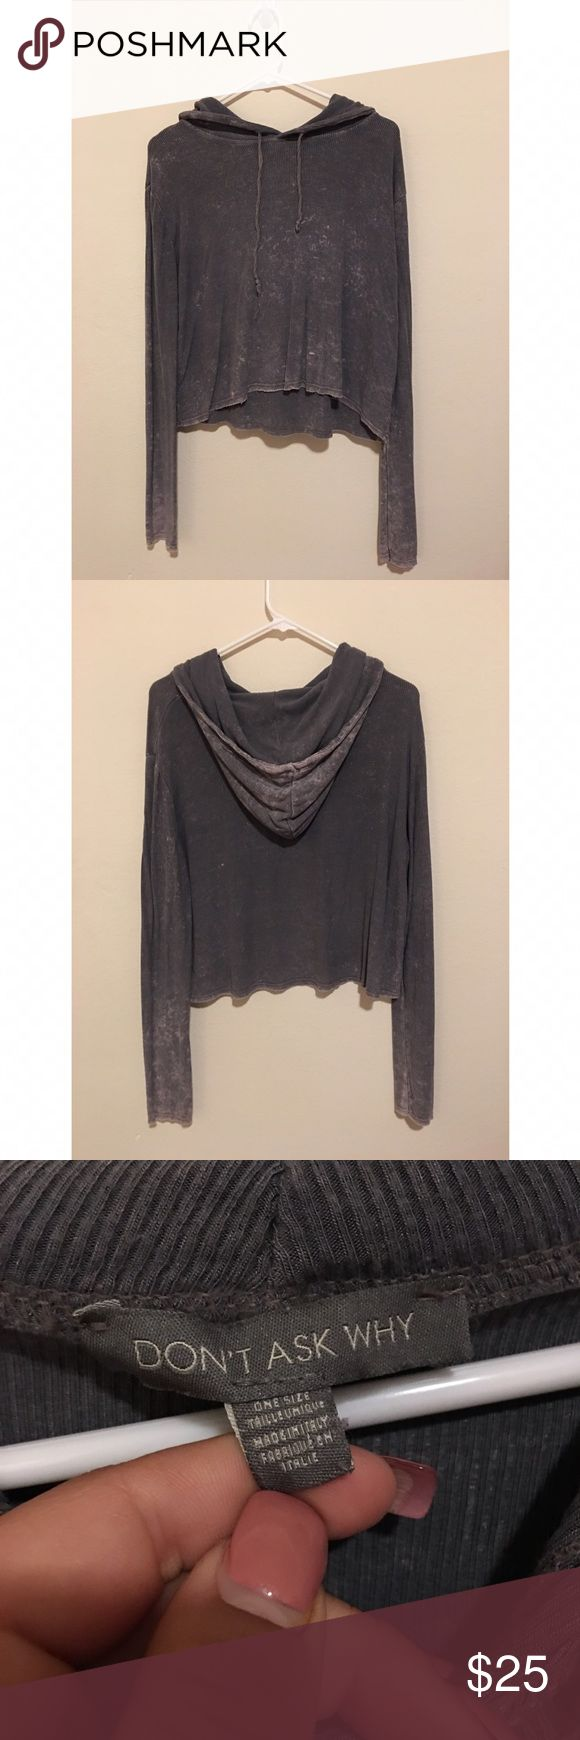 """American Eagle Crop Sweatshirt Distressed lightweight Crop hoodie sweatshirt. Tag says """"One Size Fits All"""", but fits like an XS/S American Eagle Outfitters Tops Sweatshirts & Hoodies"""